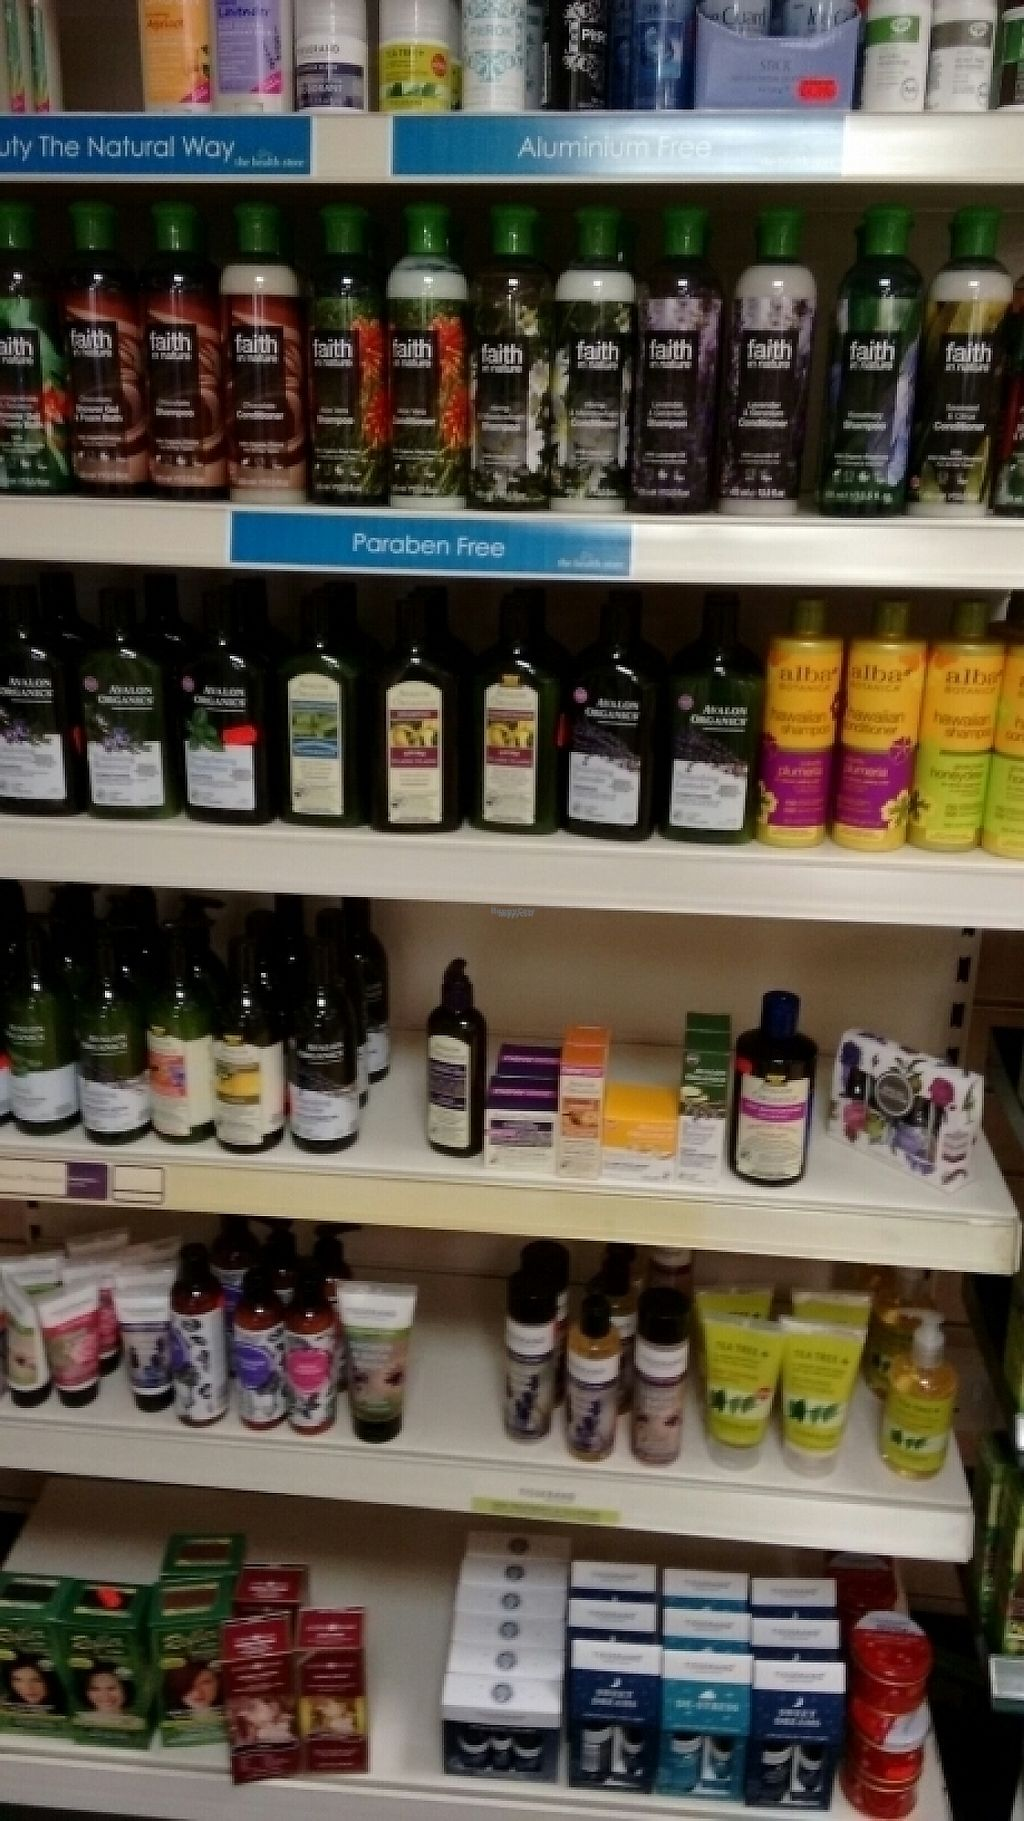 """Photo of The Health Store  by <a href=""""/members/profile/craigmc"""">craigmc</a> <br/>organic <br/> November 19, 2016  - <a href='/contact/abuse/image/32642/192099'>Report</a>"""